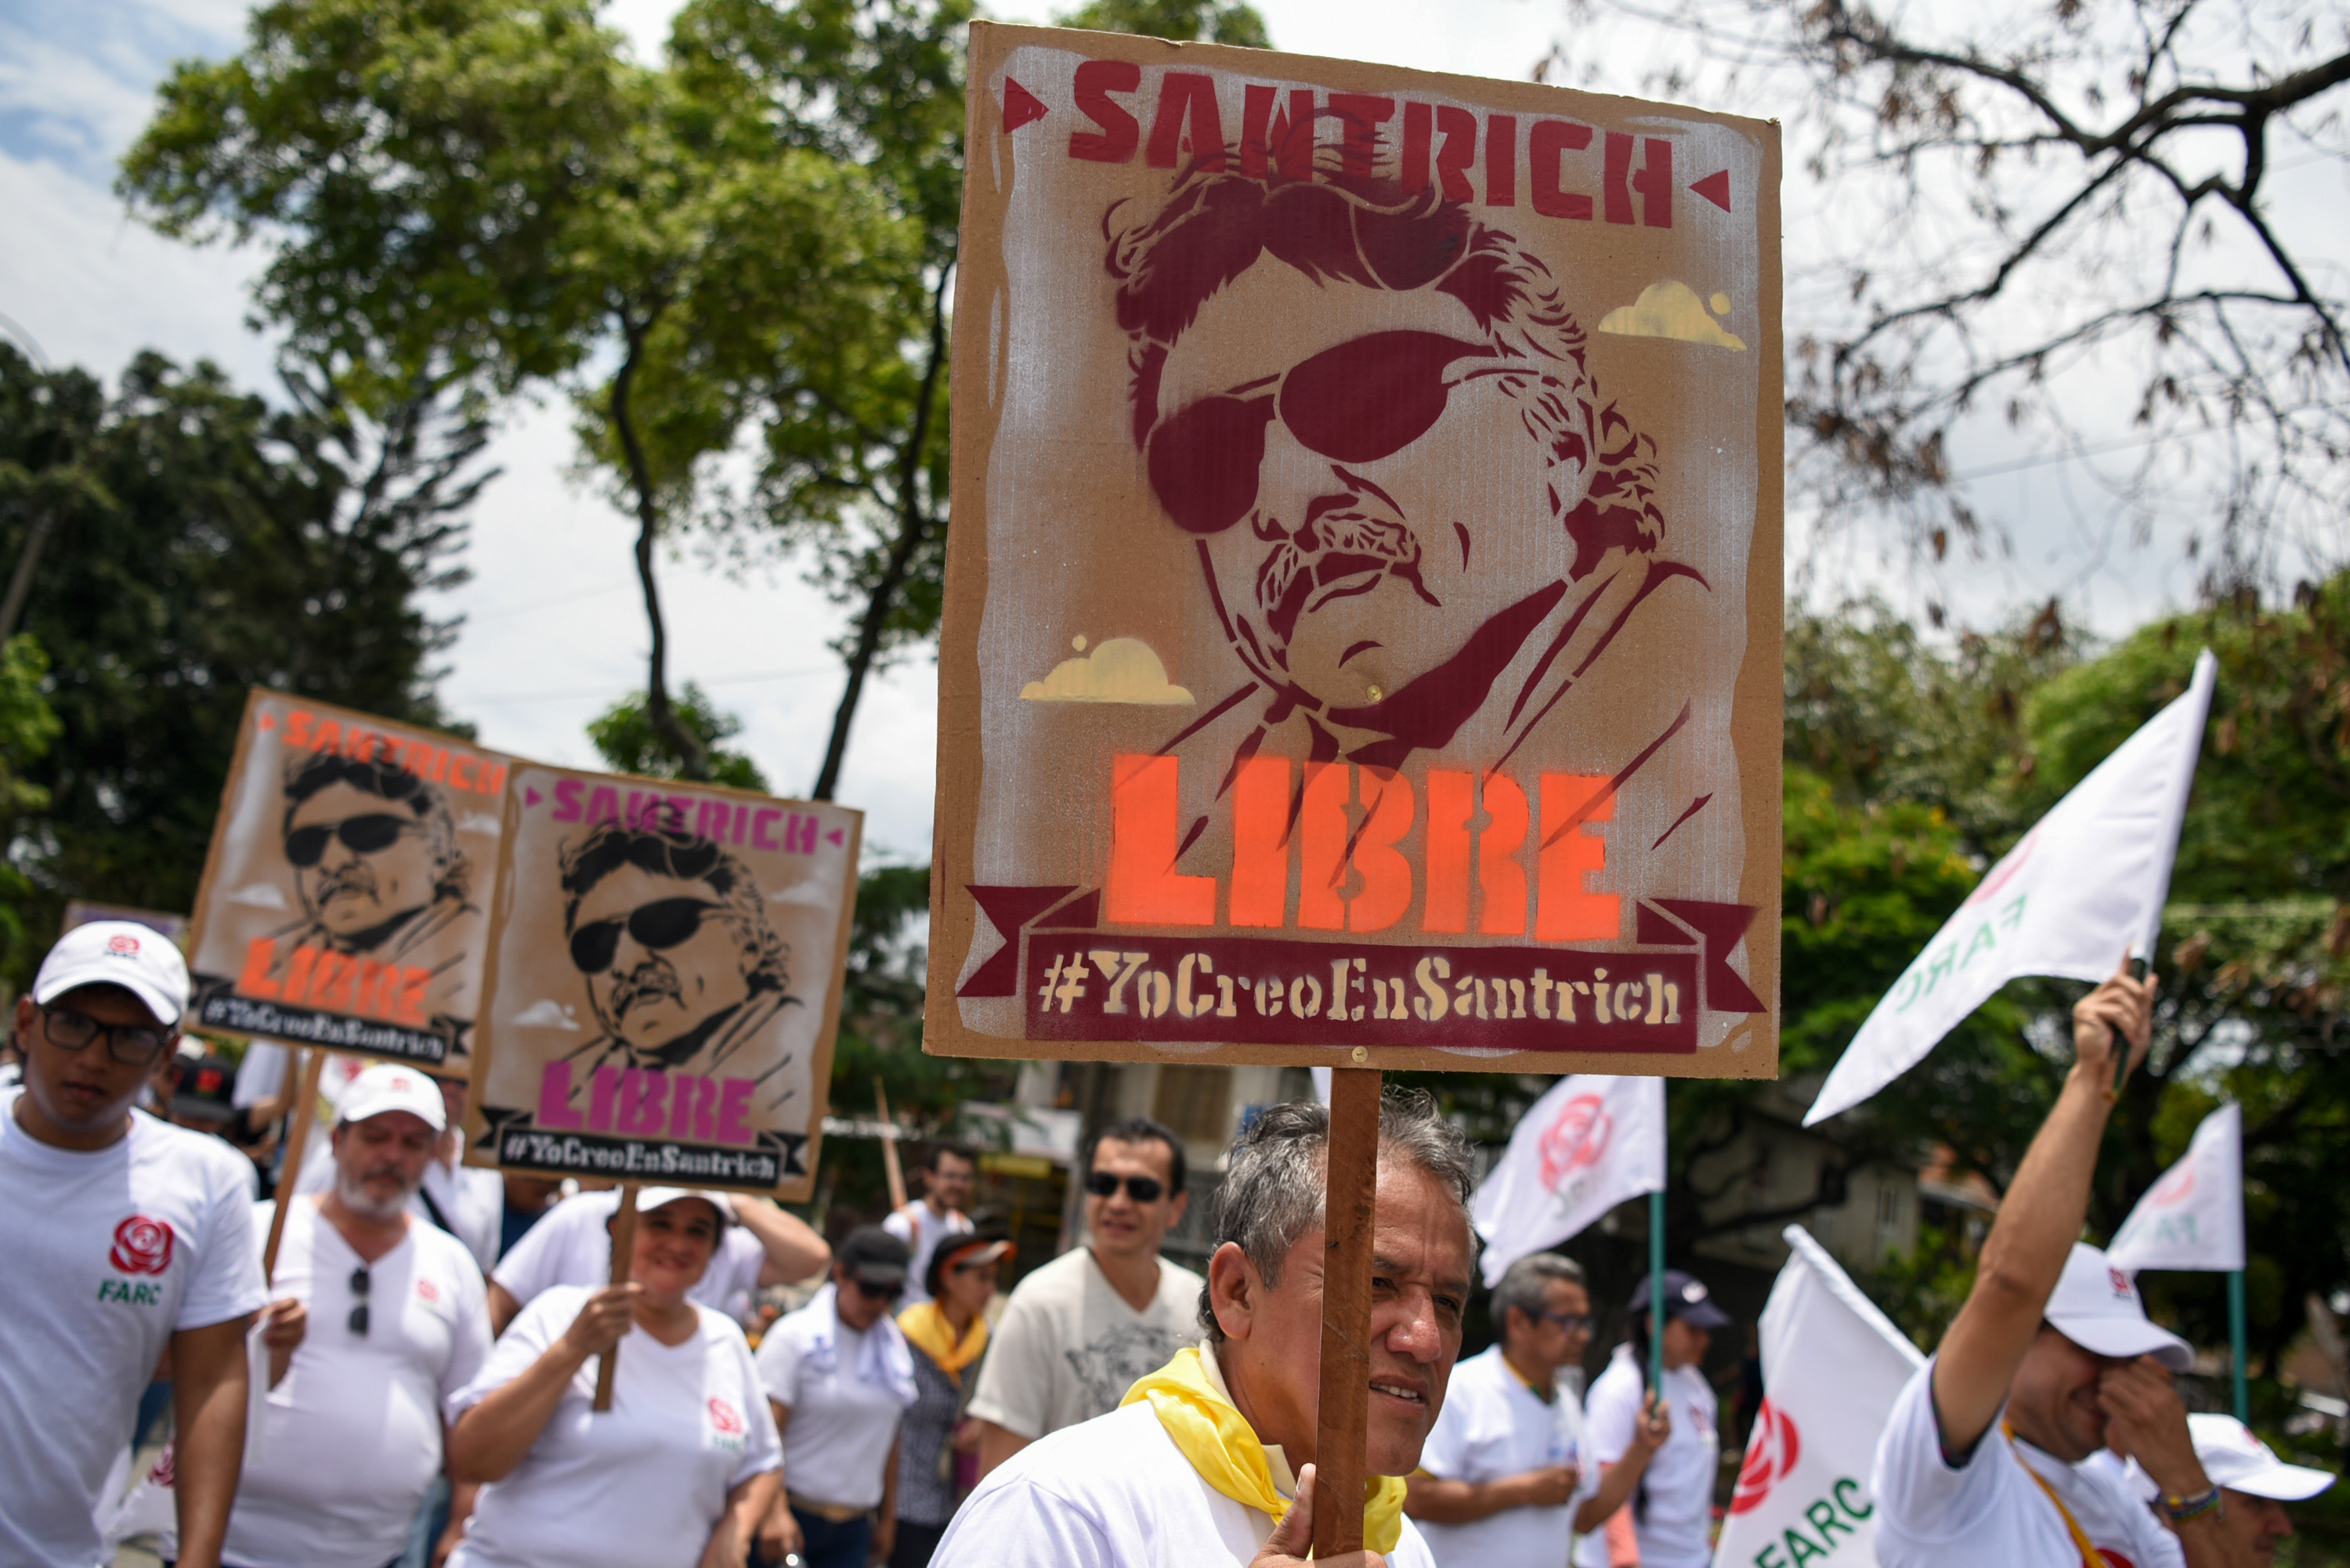 Supporters of the rebel-group-turned-political-party (FARC) hold signs depicting former commander who had been slated to take a seat in Colombia's Congress Jesus Santrich, during a May Day march in Cali, Colombia on May 1, 2018.